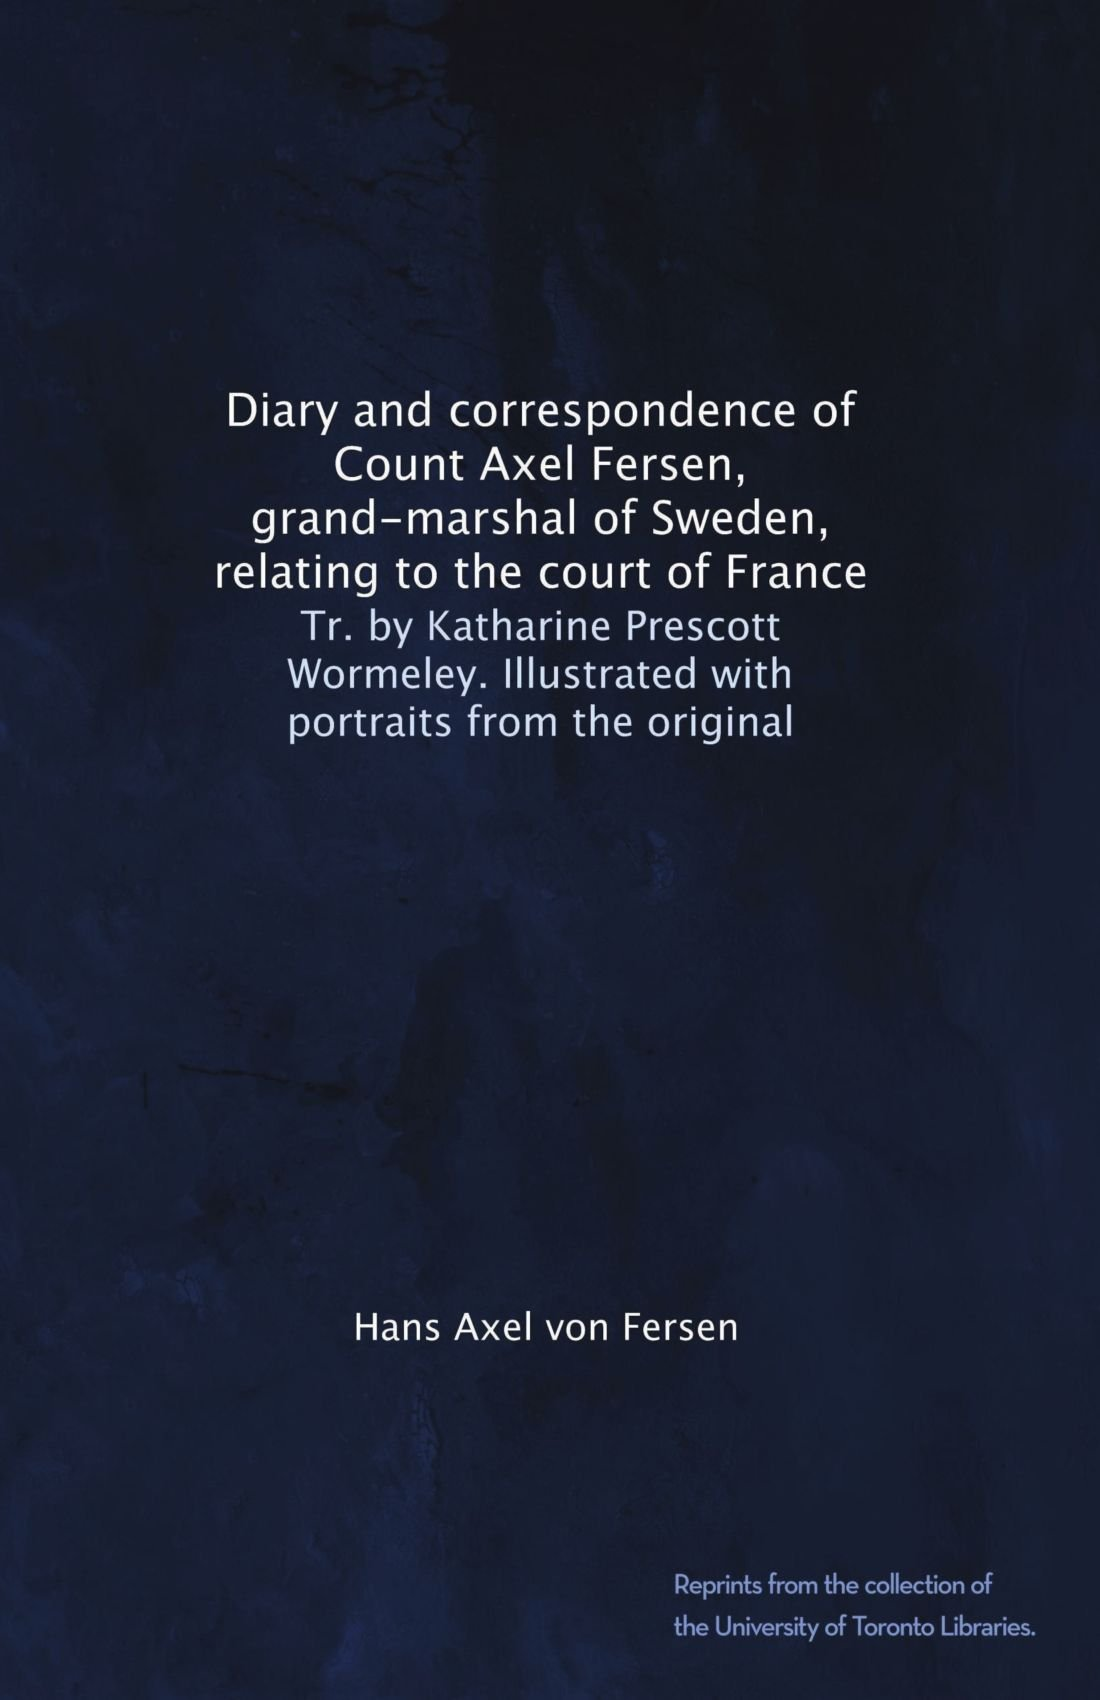 Diary and correspondence of Count Axel Fersen, grand-marshal of Sweden,  relating to the court of France: Tr. by Katharine Prescott Wormeley.